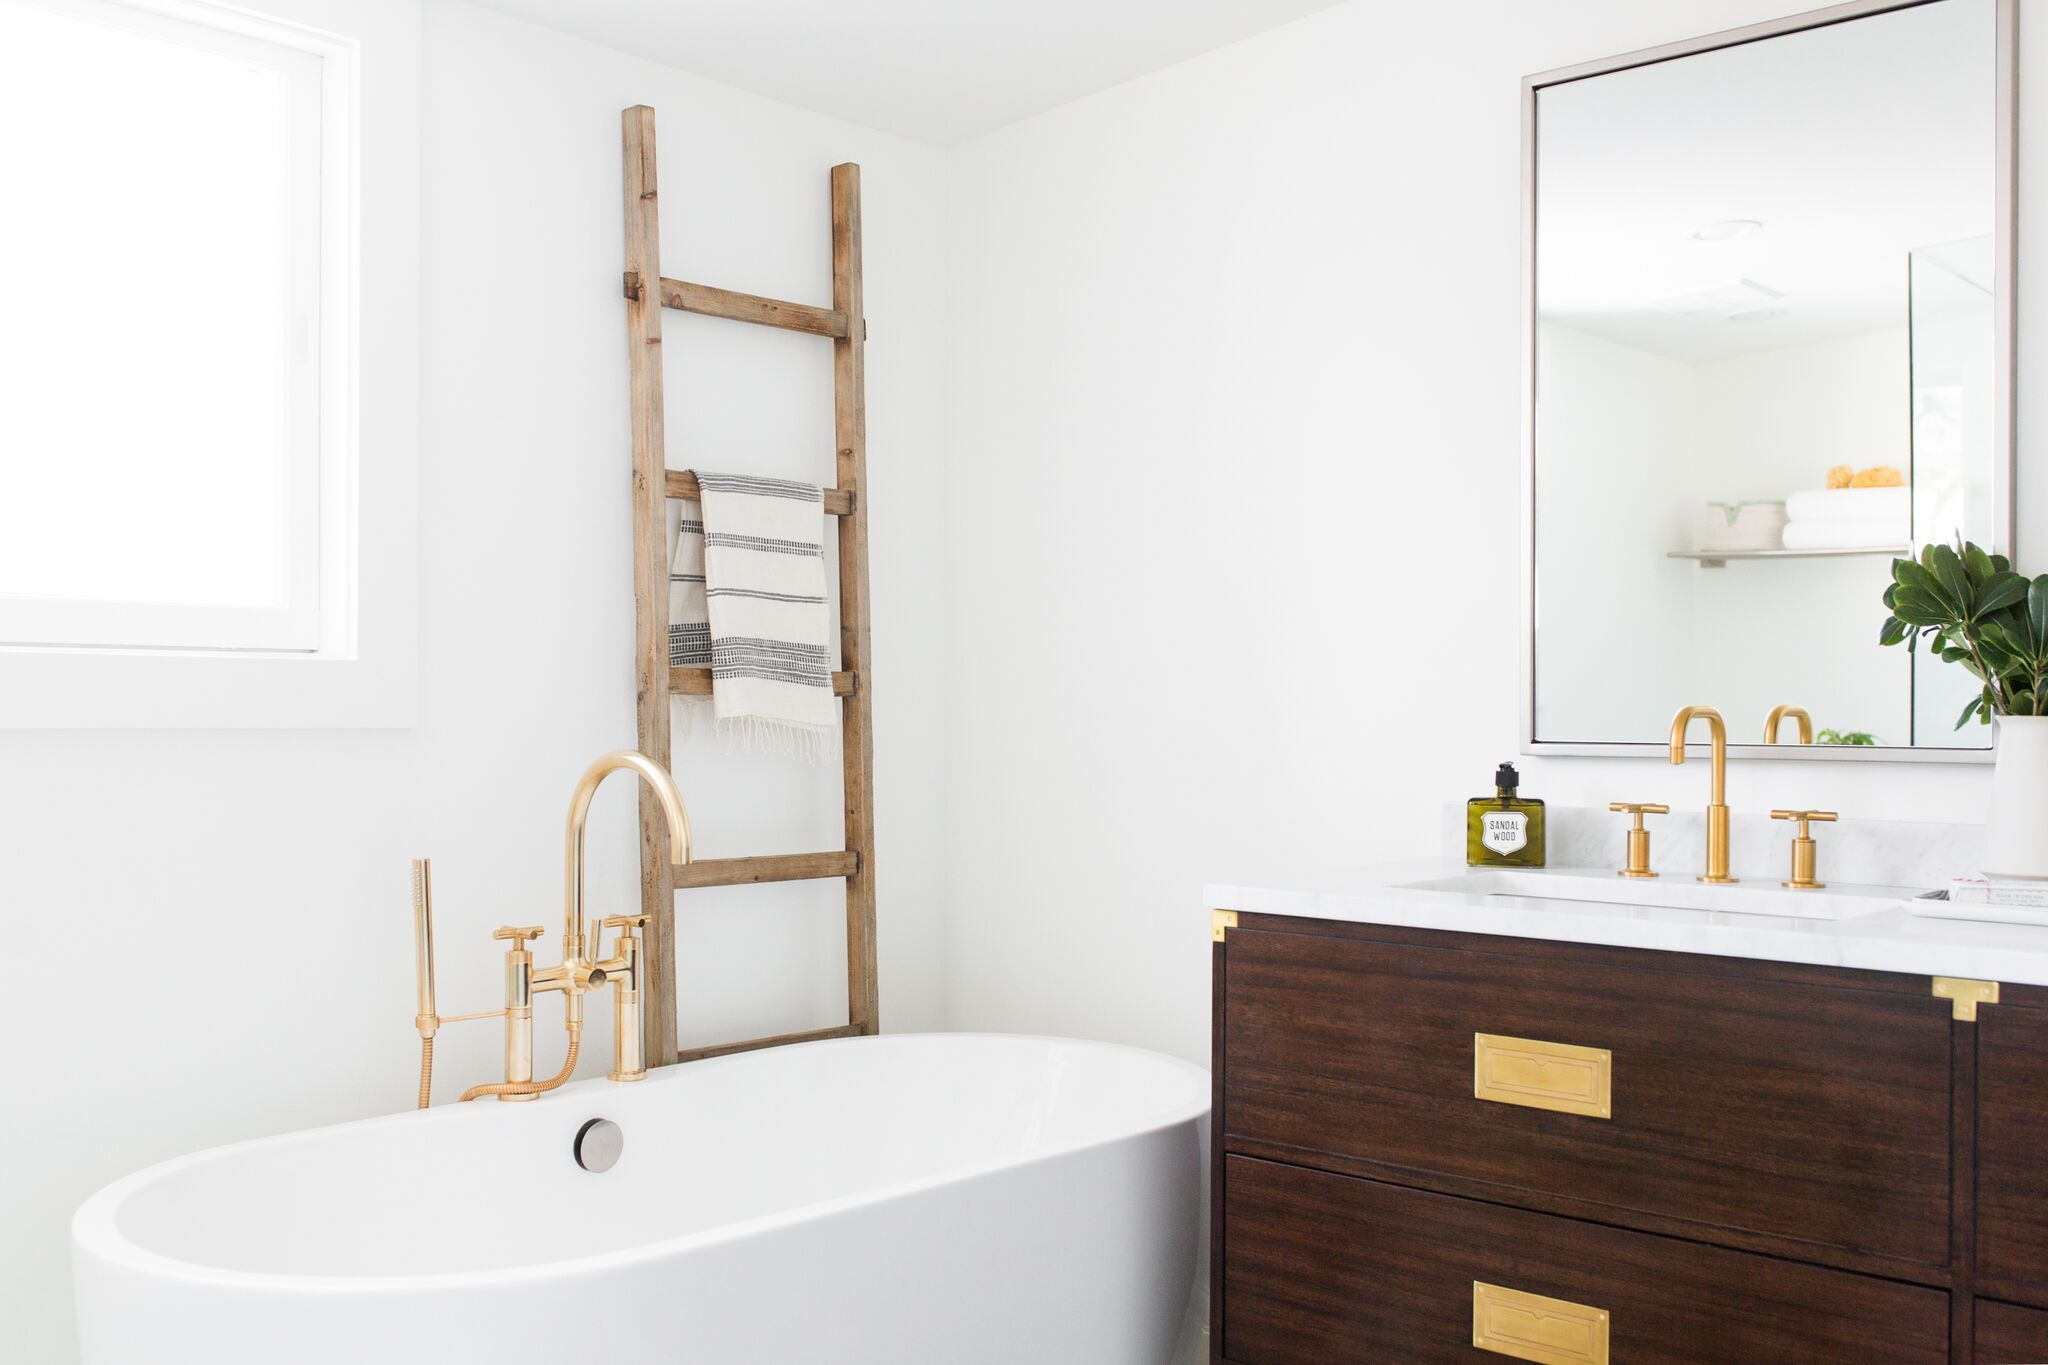 Small decorative ladder on edge of tub